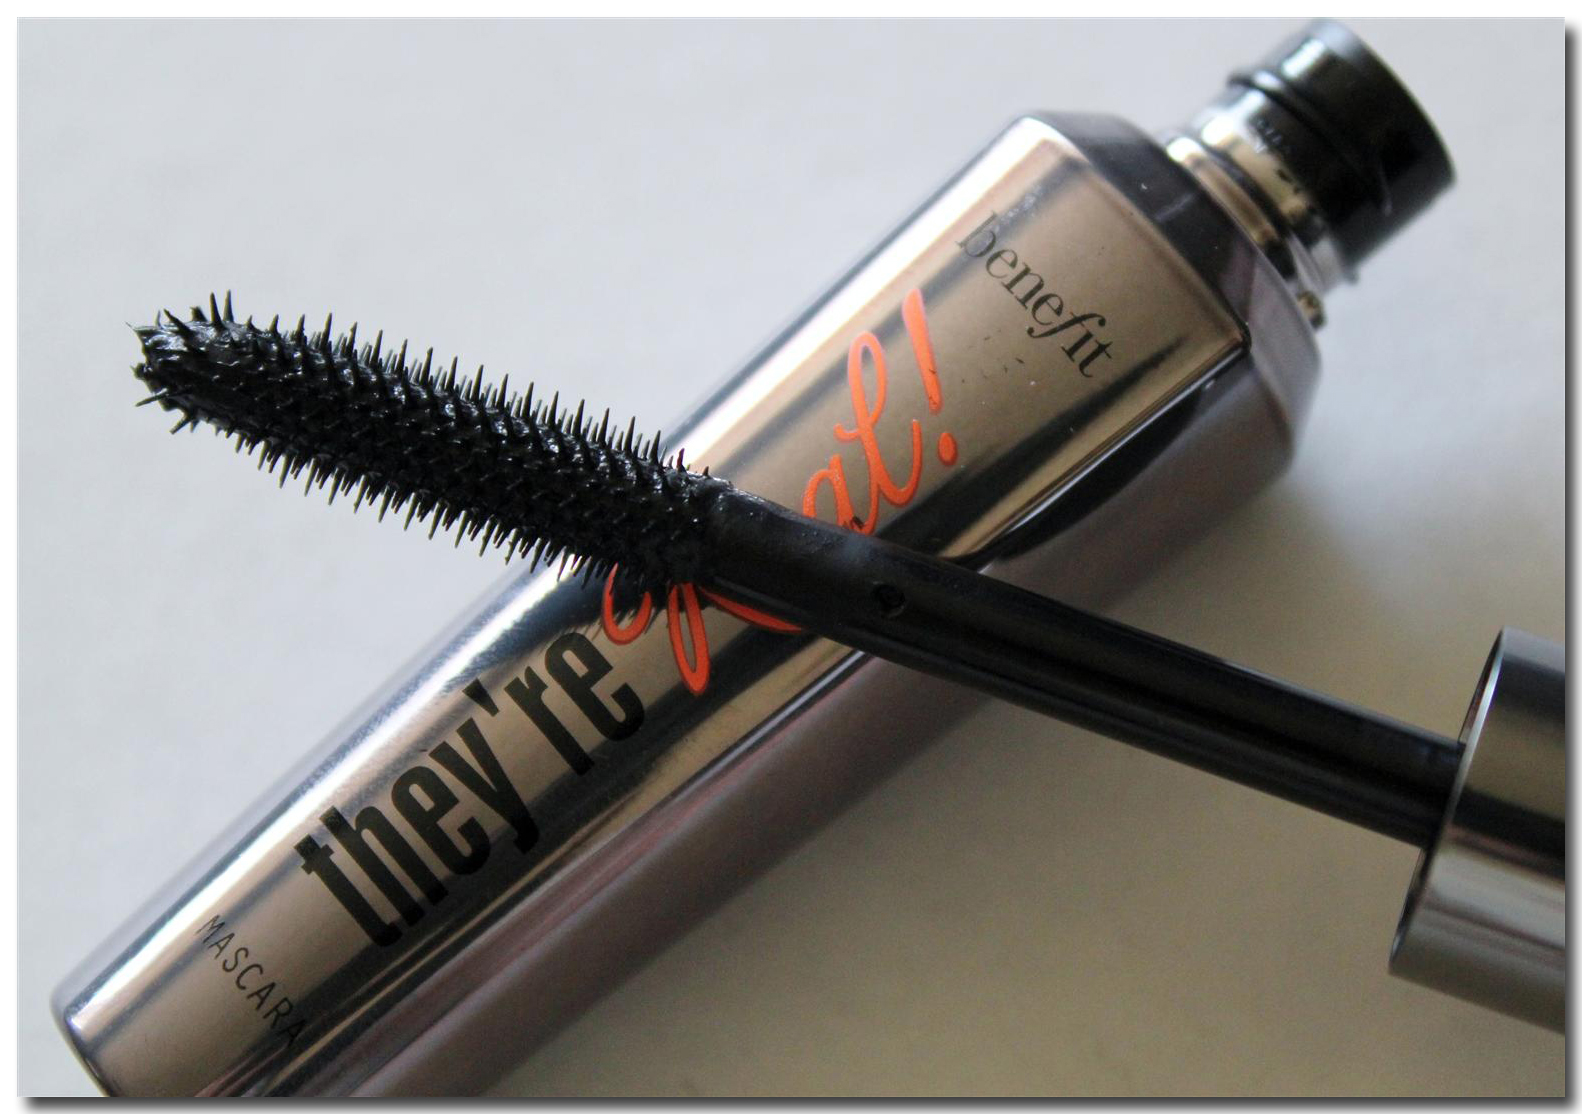 Review: Benefit Cosmetics- they're real! – Hannah's Blog